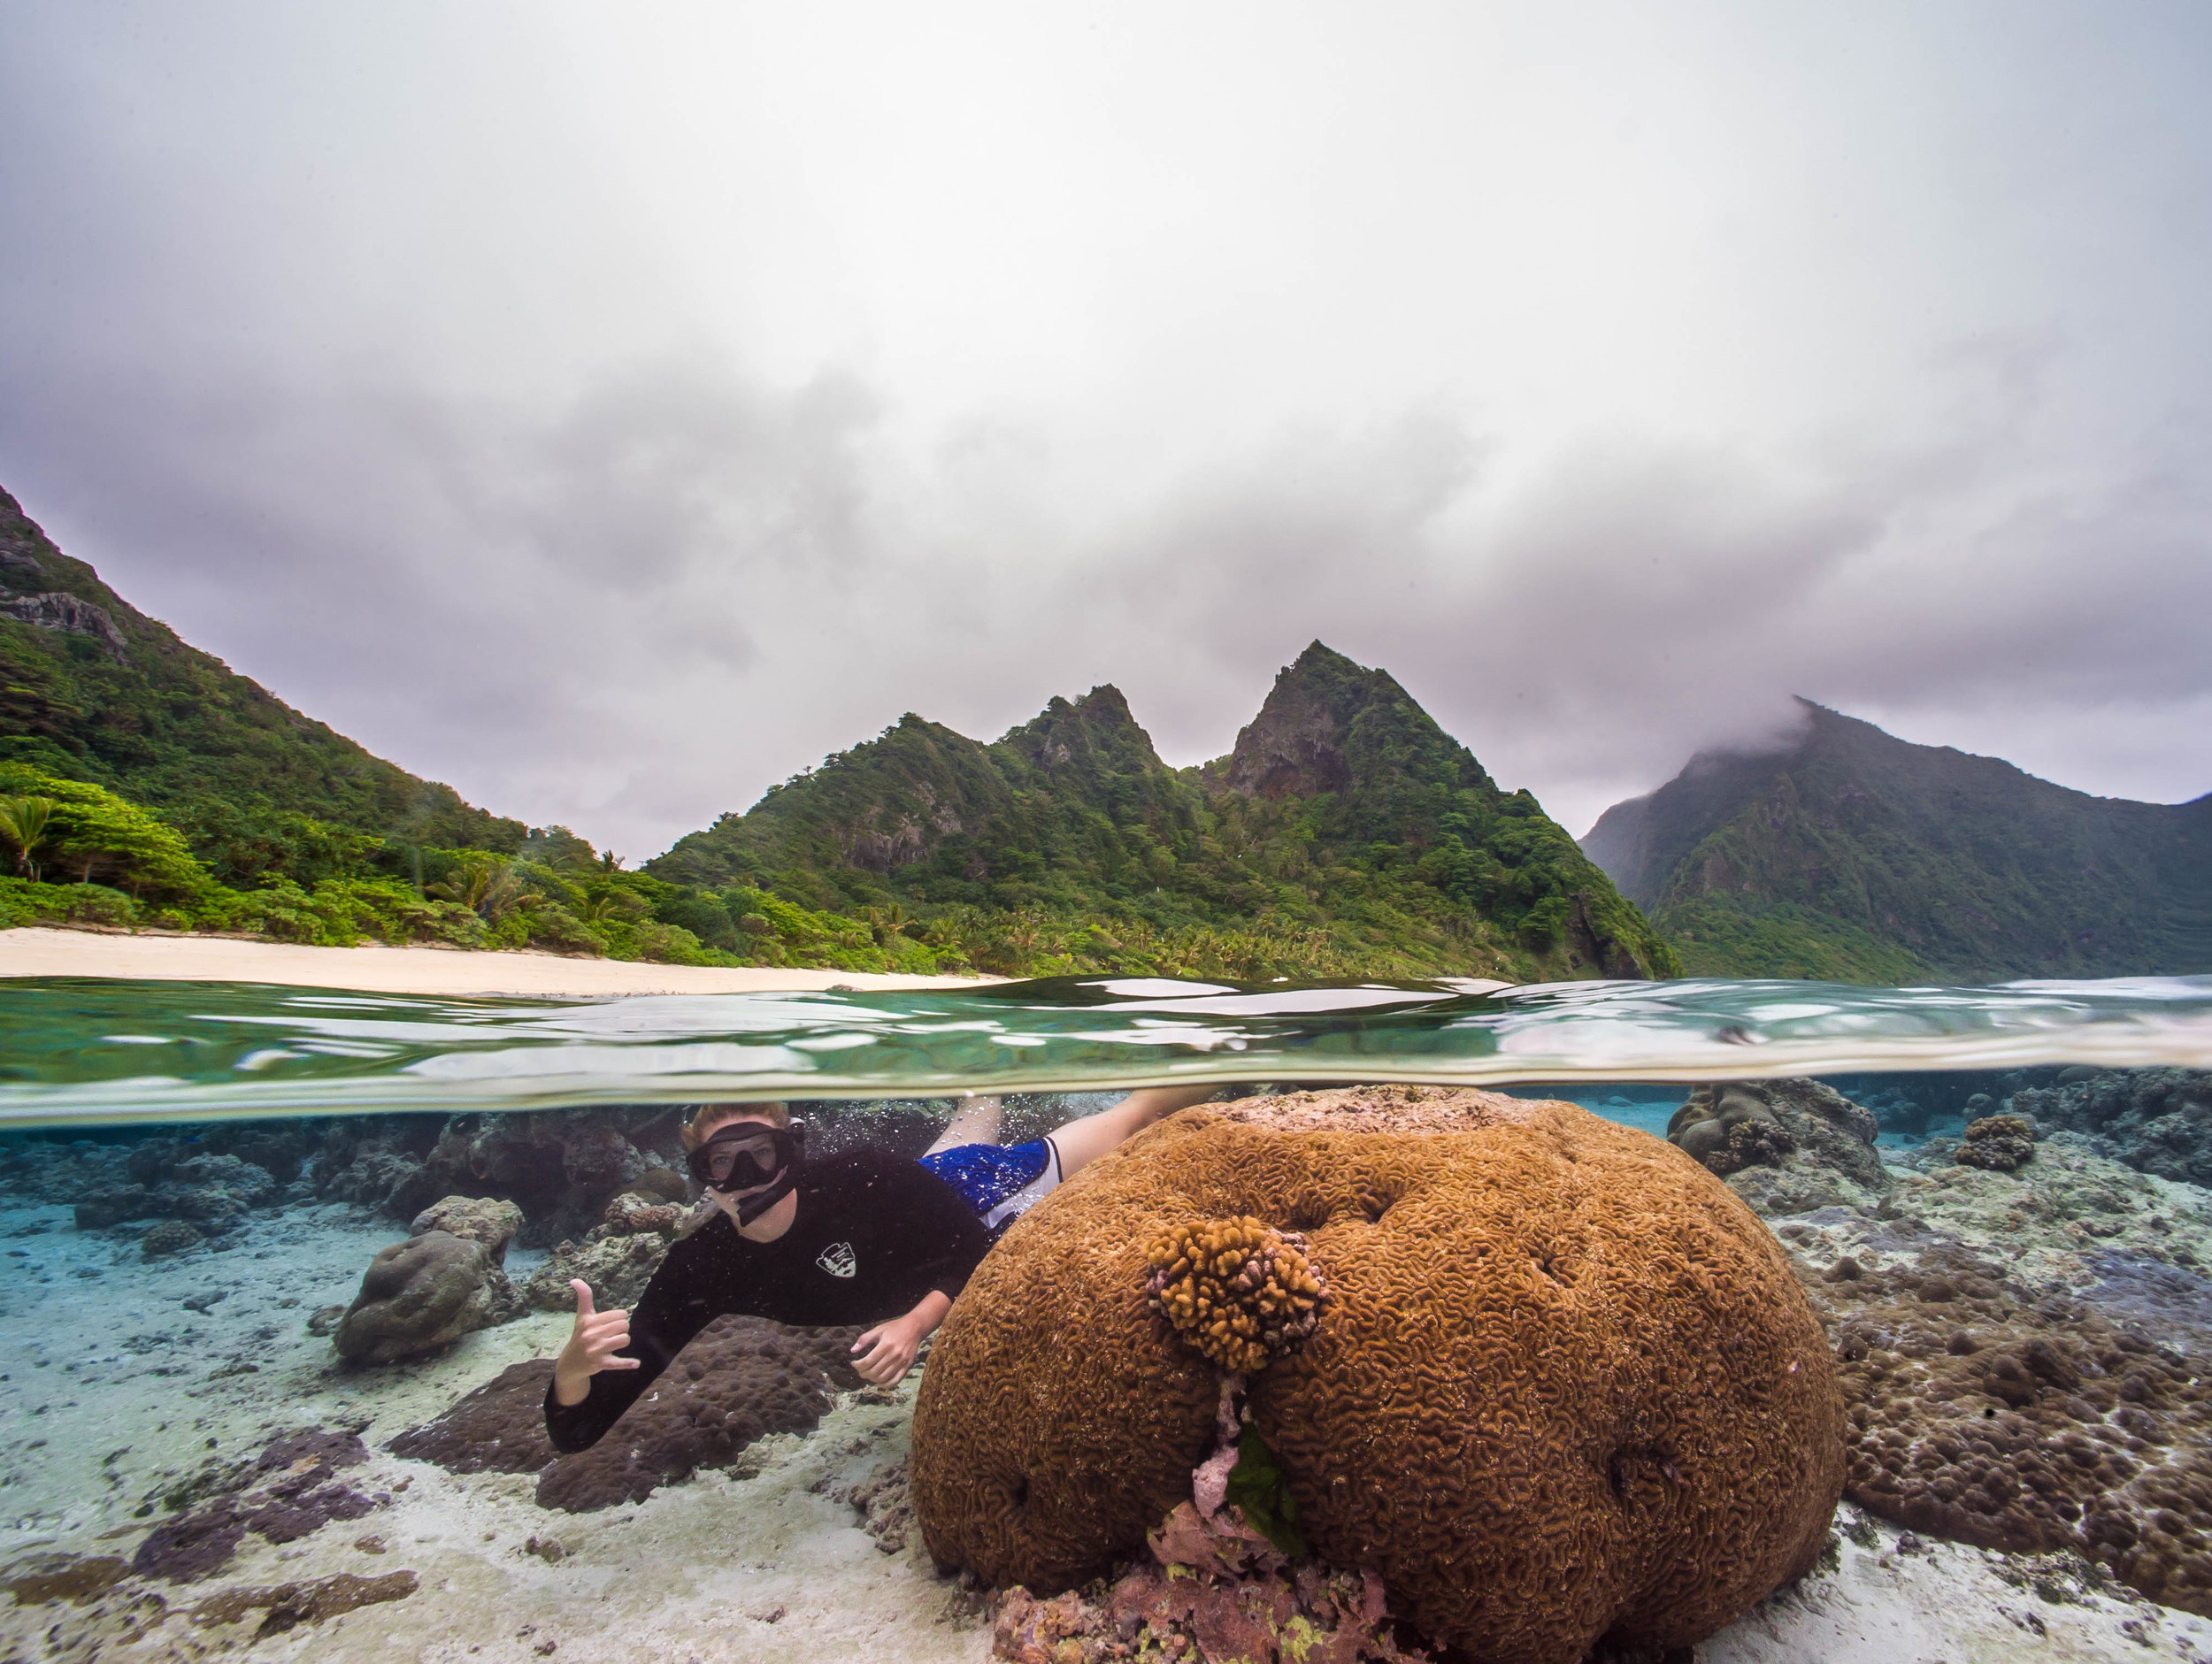 National Park of American Samoa Credit: Shaun wolfe / coral reef image bank